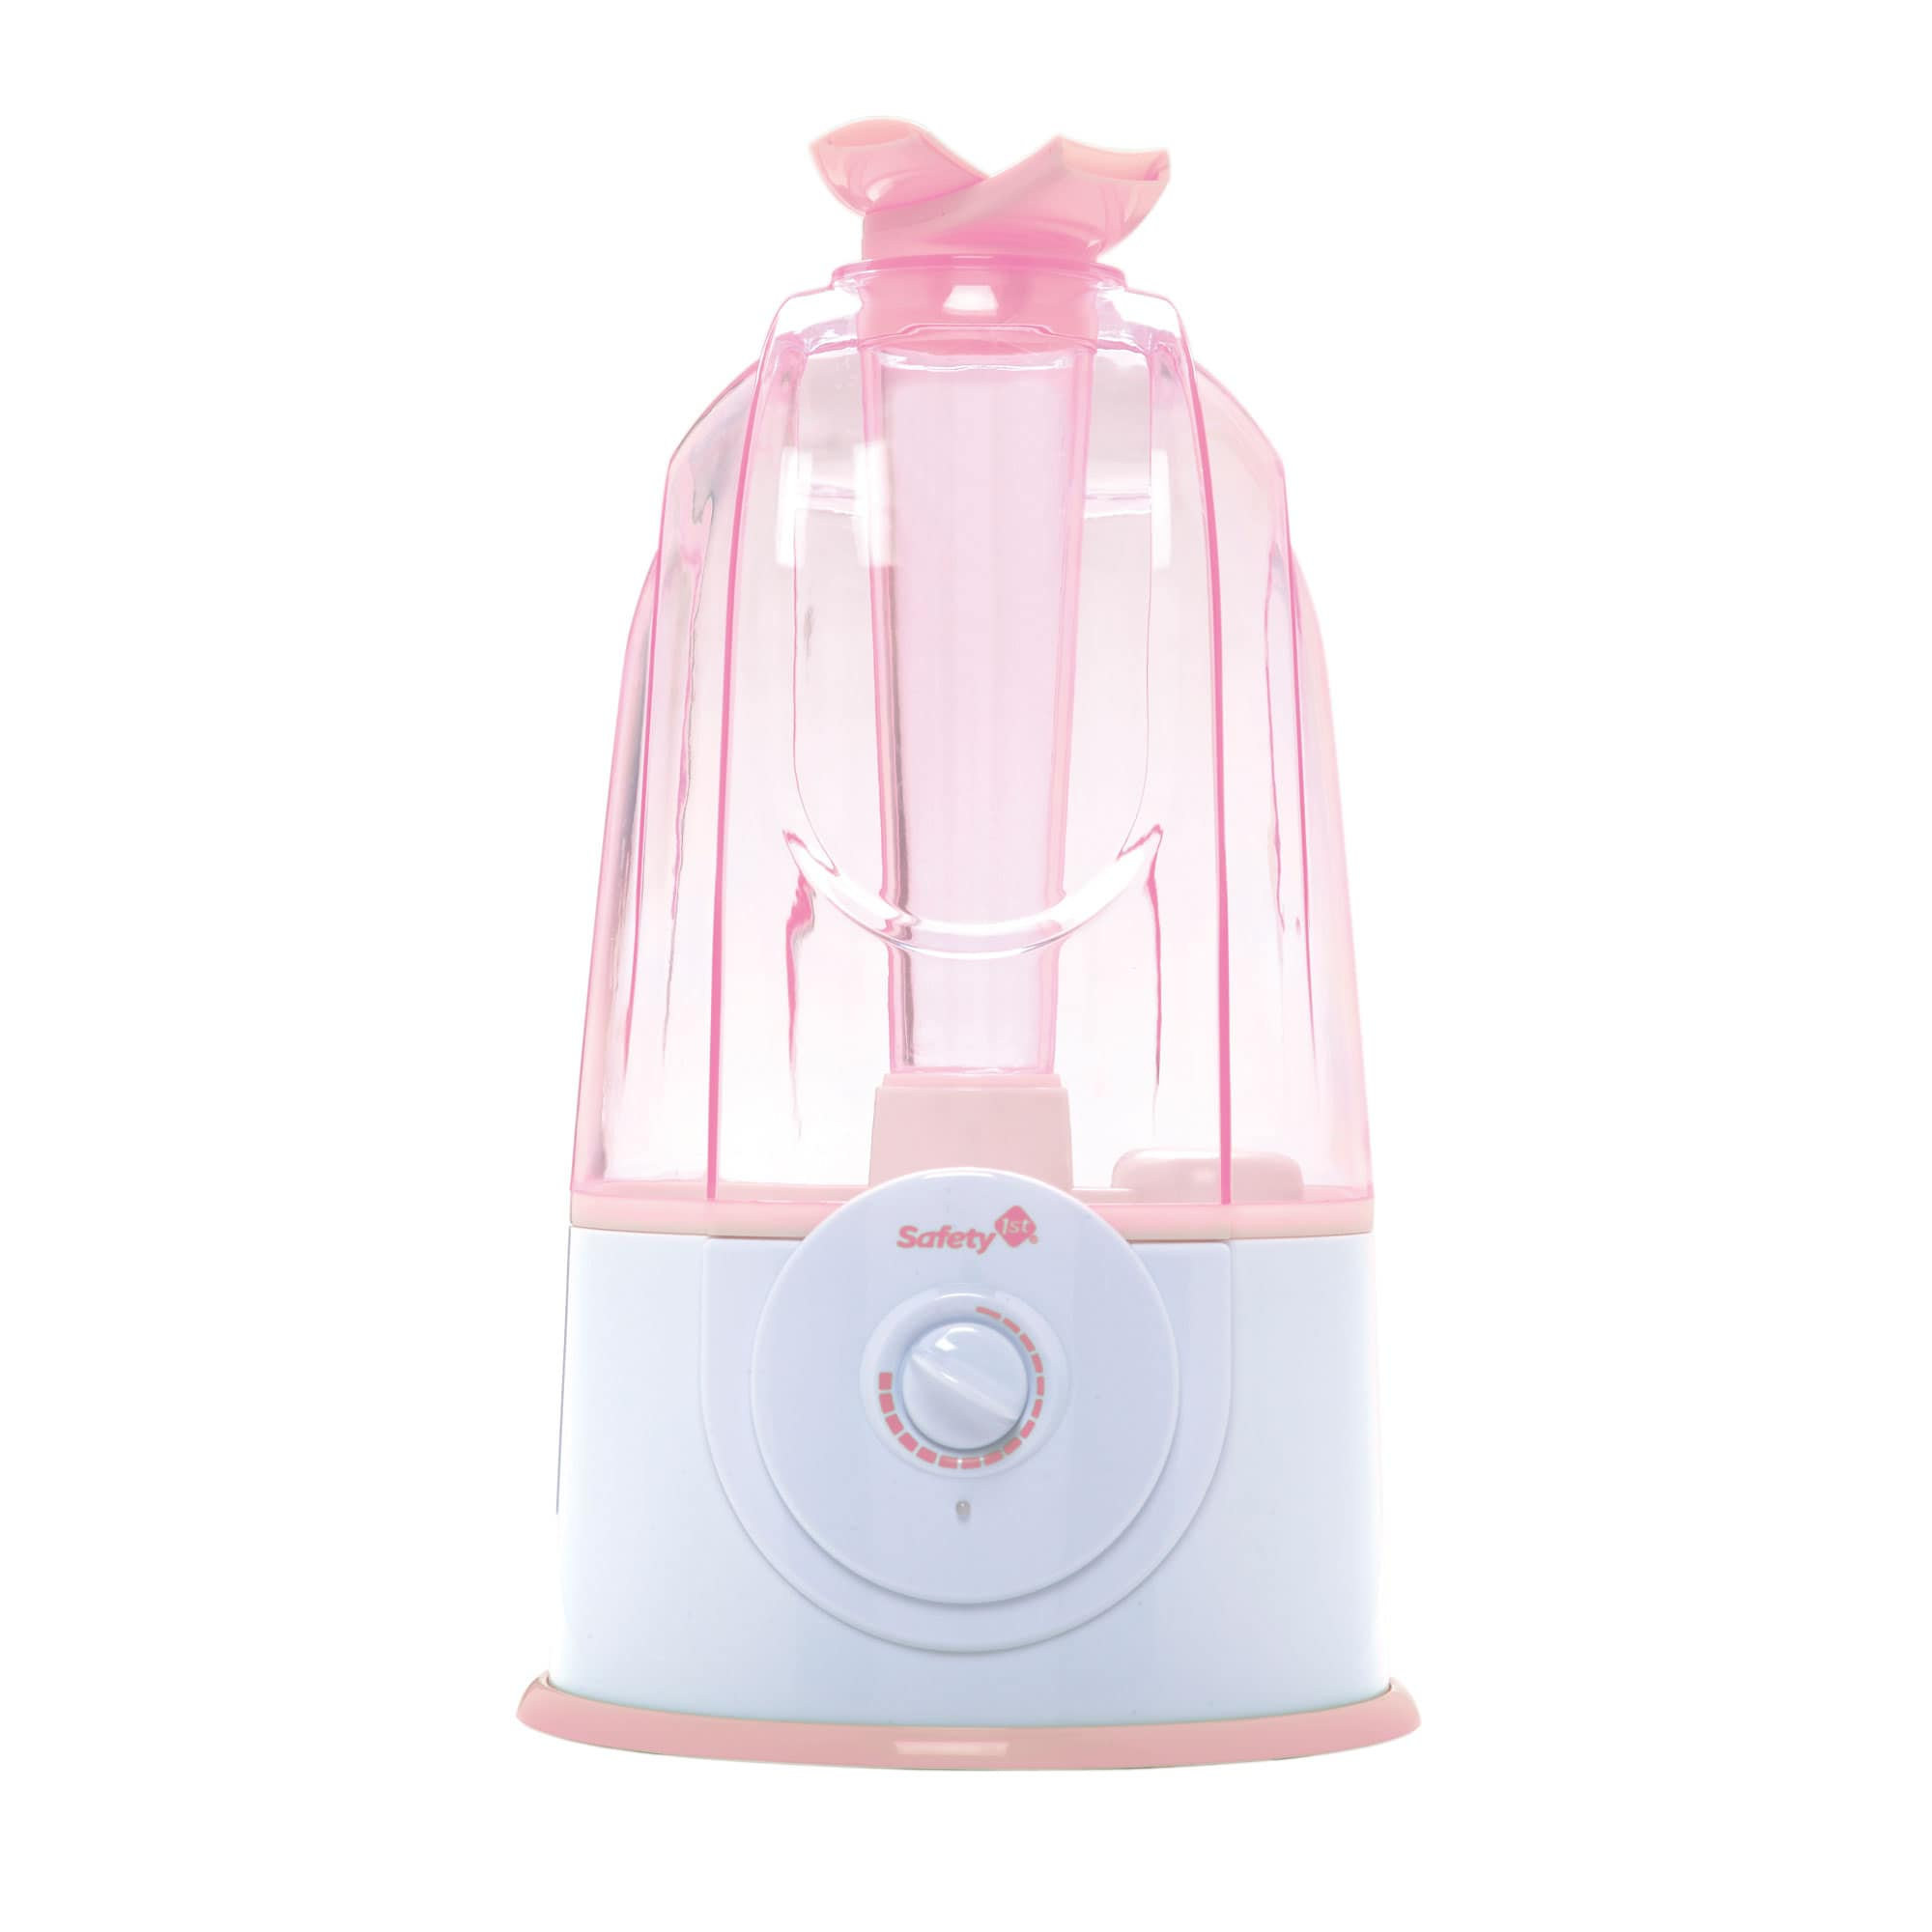 Safety 1st Ultrasonic 360-degree Pink Humidifier